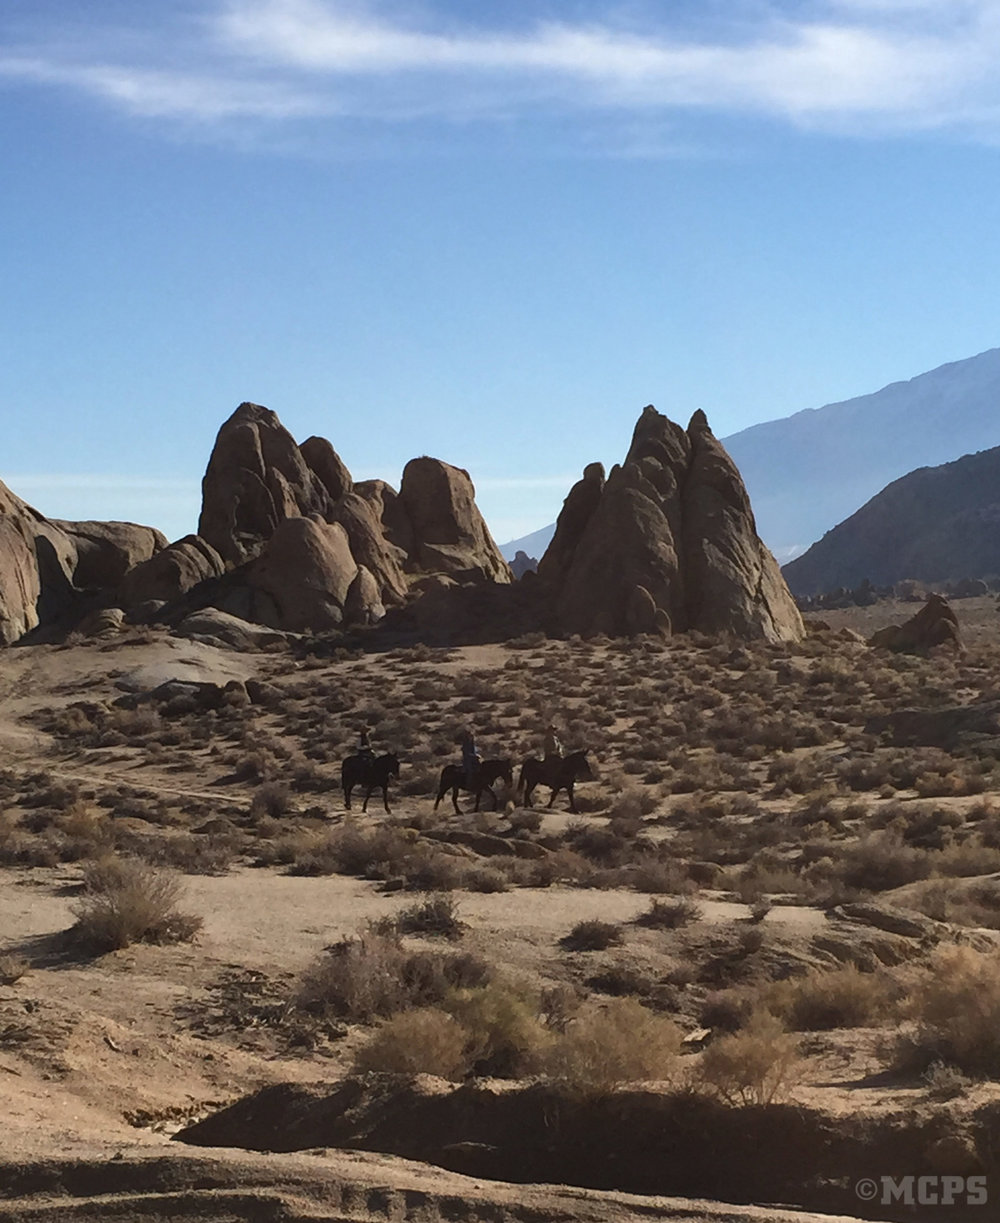 A party of riders explores the incredible geology of the Alabama Hills